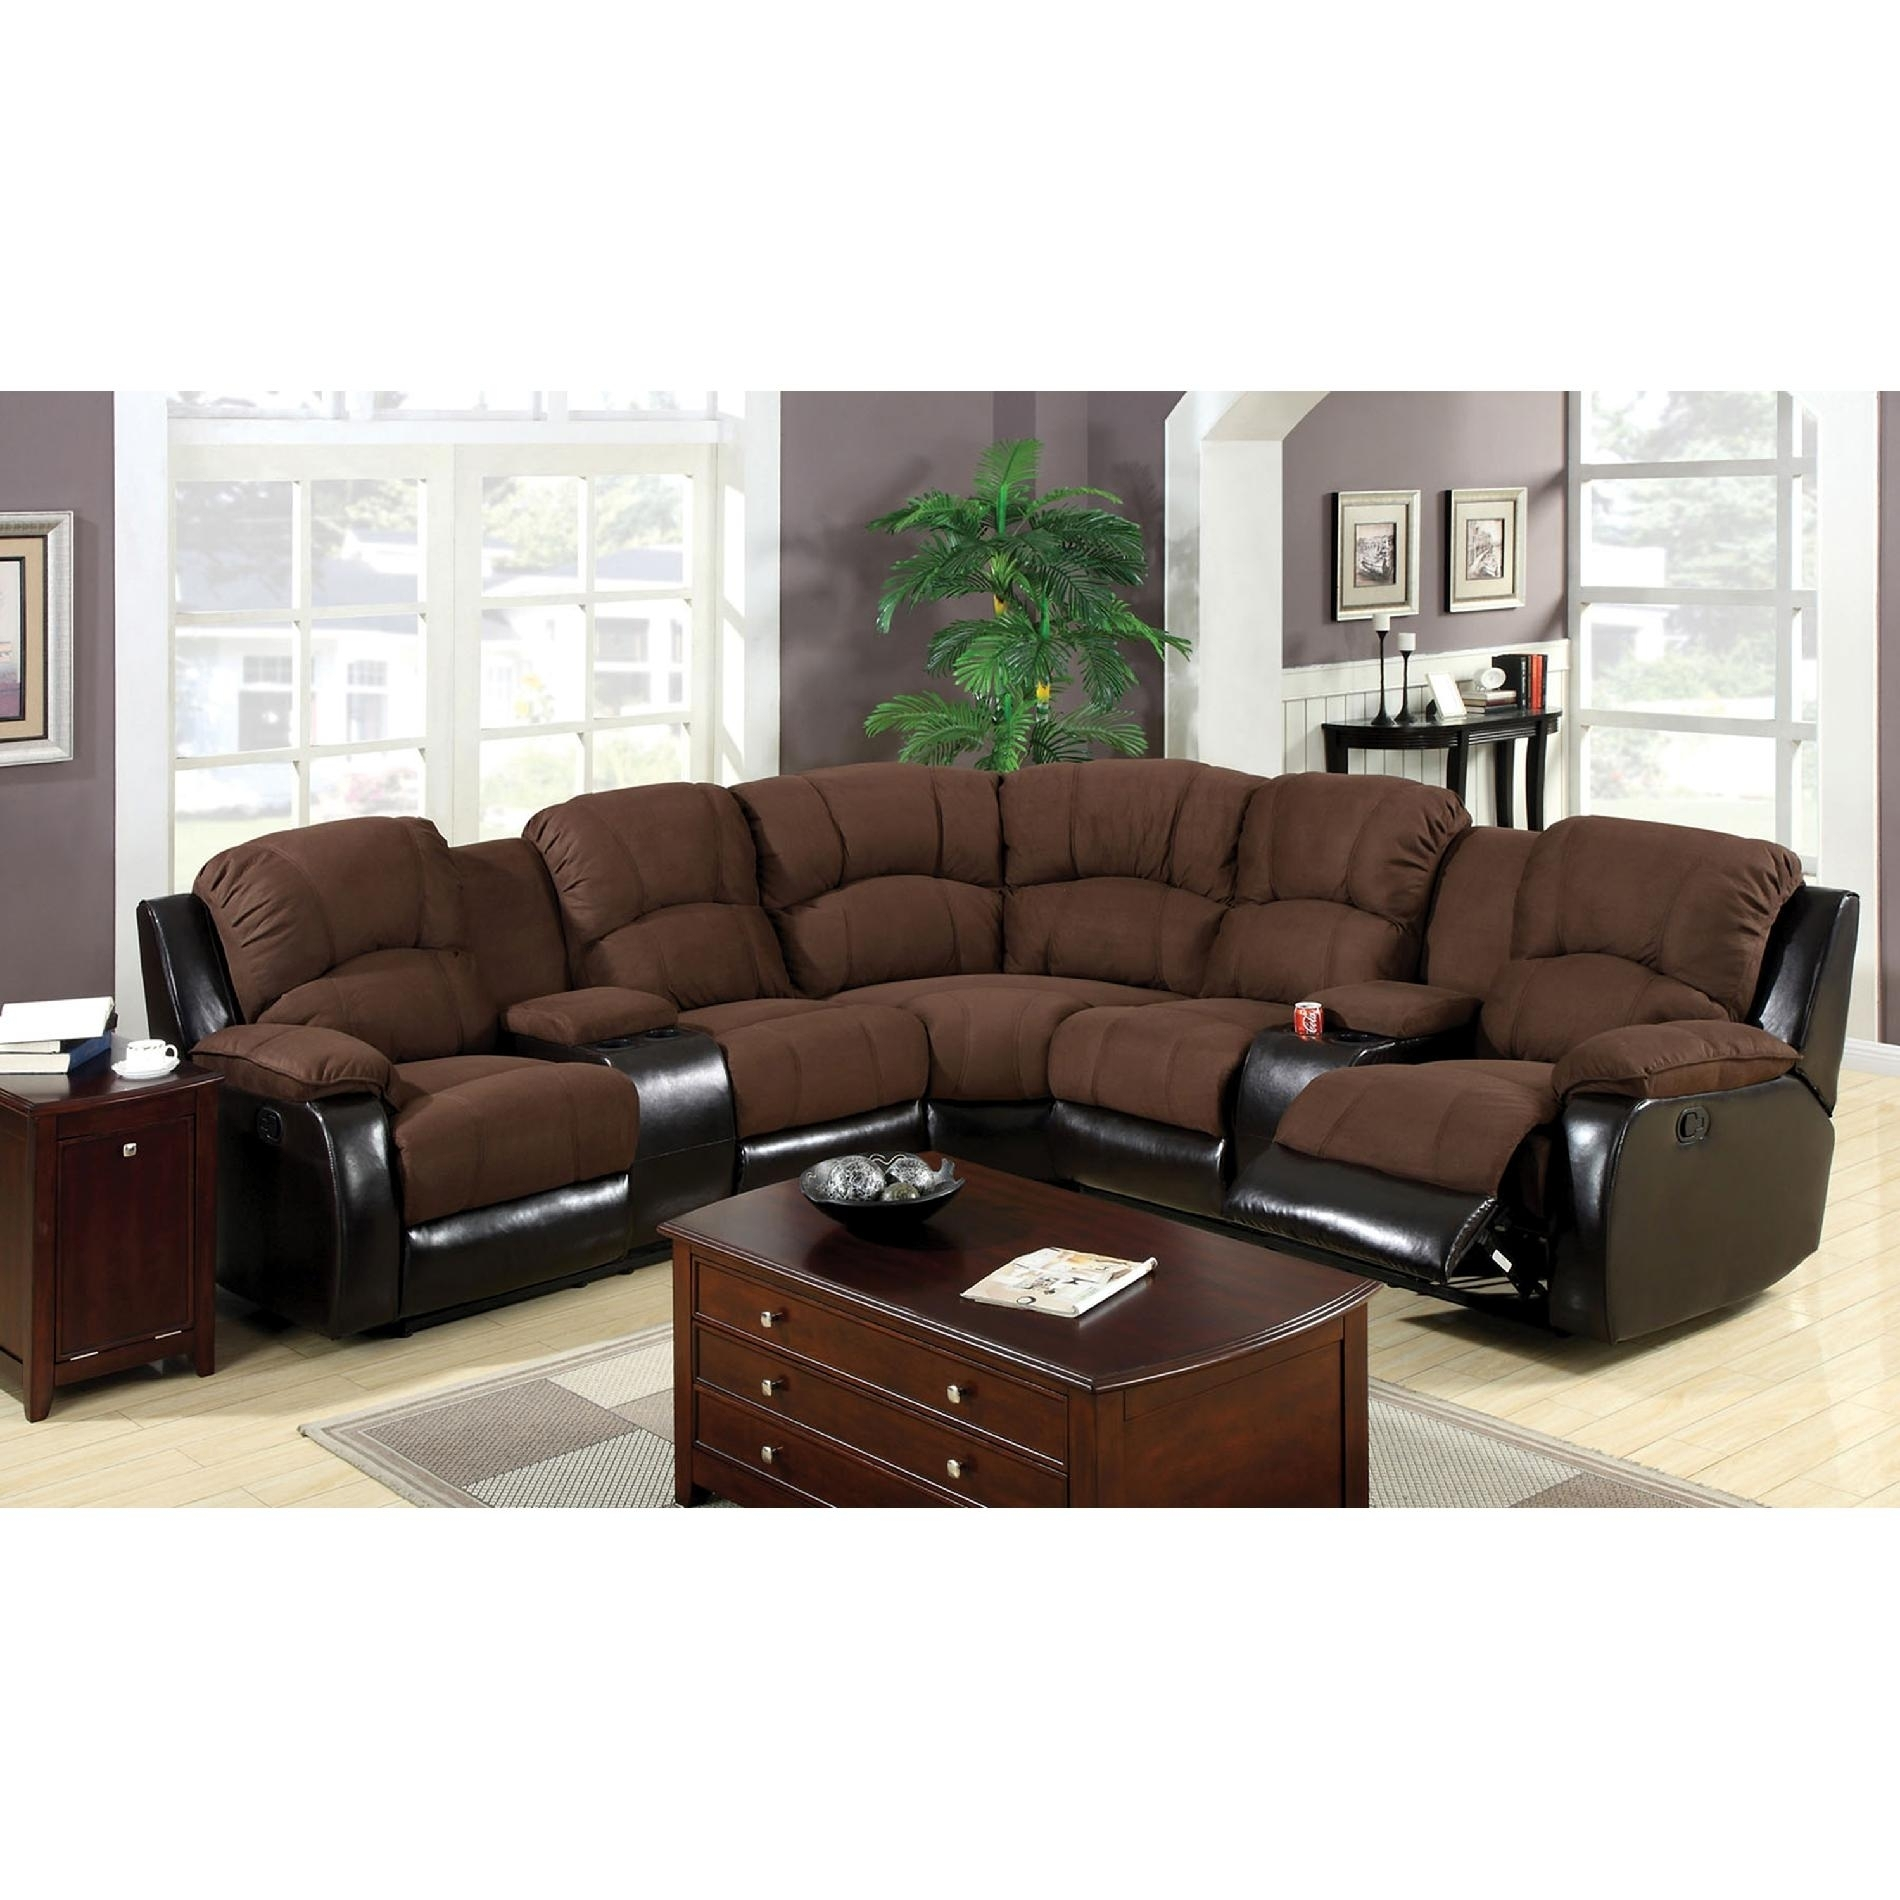 Brilliant Kmart Sectional Sofa – Buildsimplehome With Kmart Sectional Sofas (Image 3 of 10)